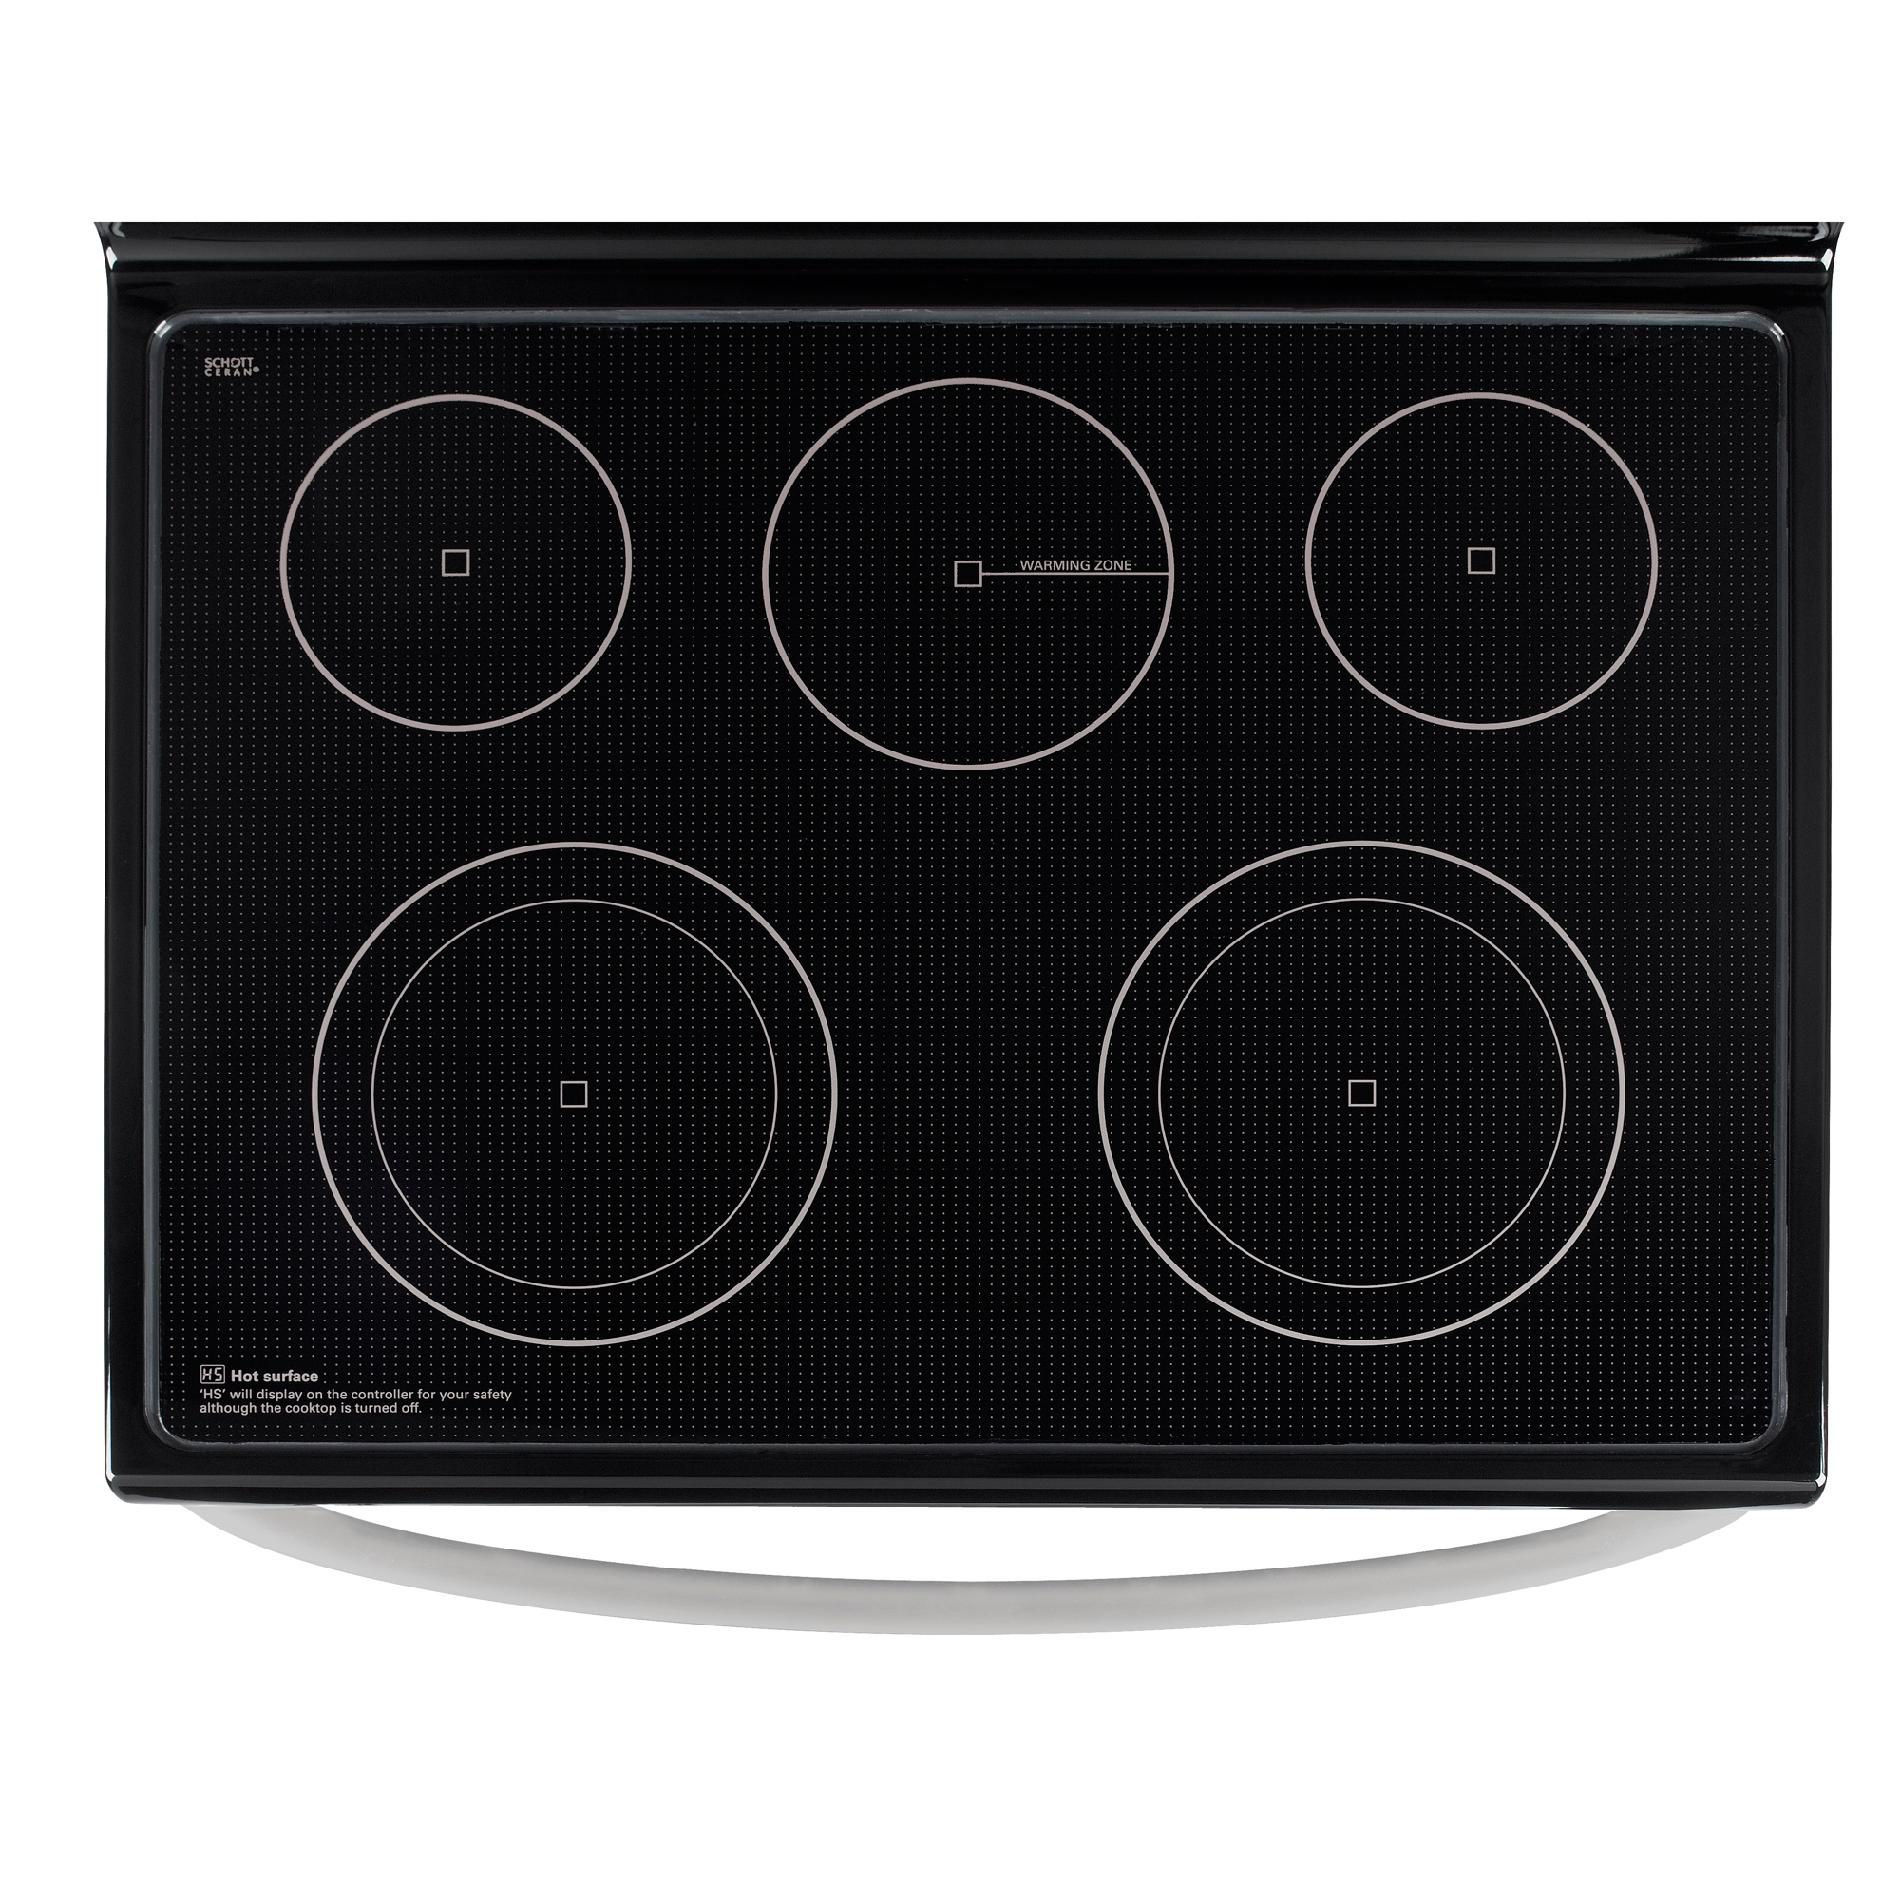 LG 6.3 cu. ft. Self-Cleaning Electric Range w/ Infrared Grill - Stainless Steel